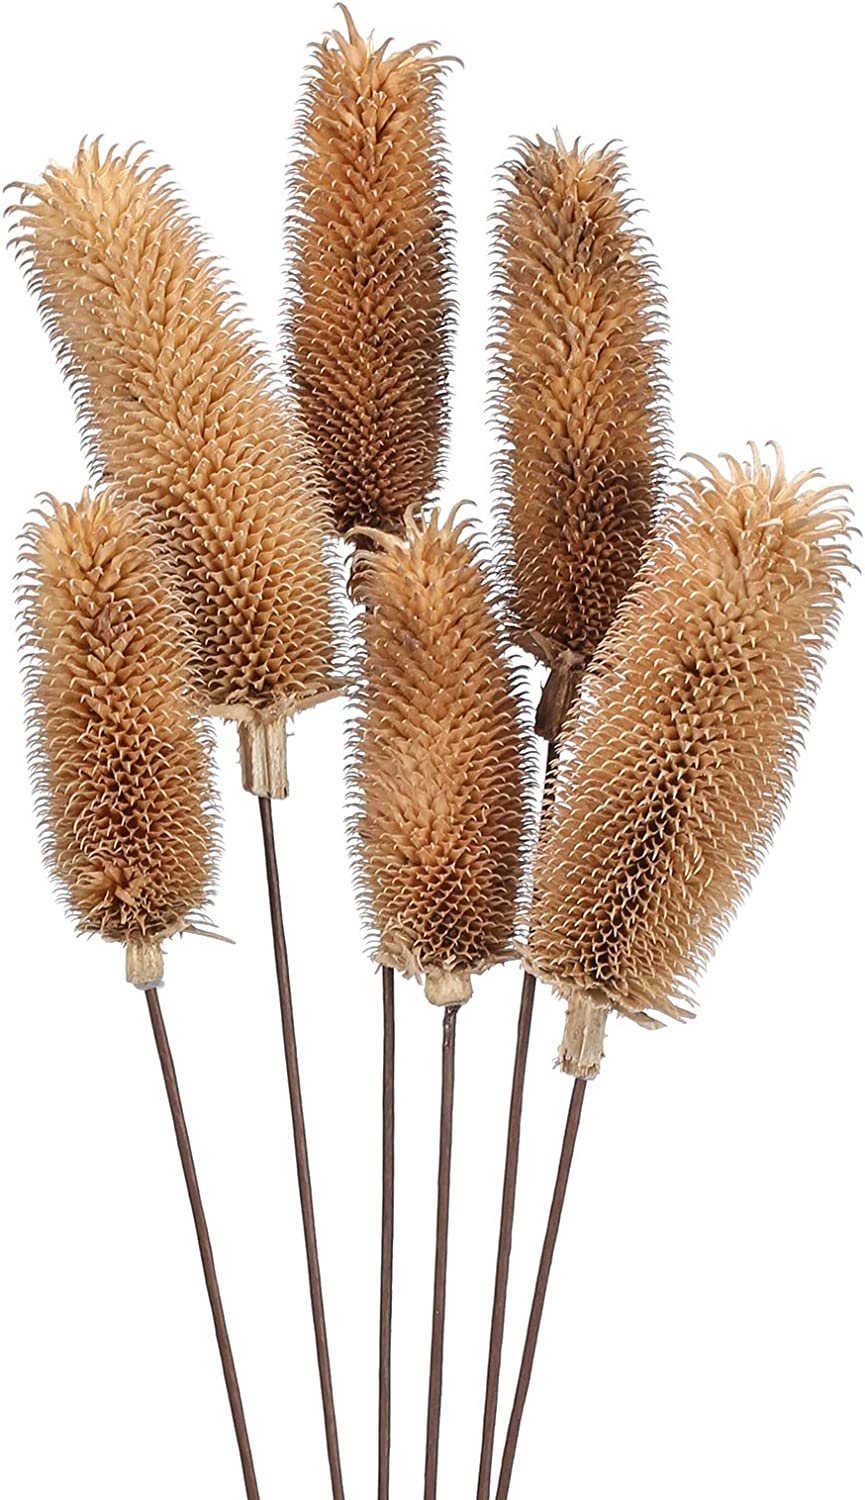 XYXCMOR 6Pcs Natural Dried Flowers Bouquet Dried Pine Cone Pompass Grass Branches Pine Flower Grass Bouquet Dried Plants for Decoration Vase Fillers Home Table Centerpieces Wedding Party Deco